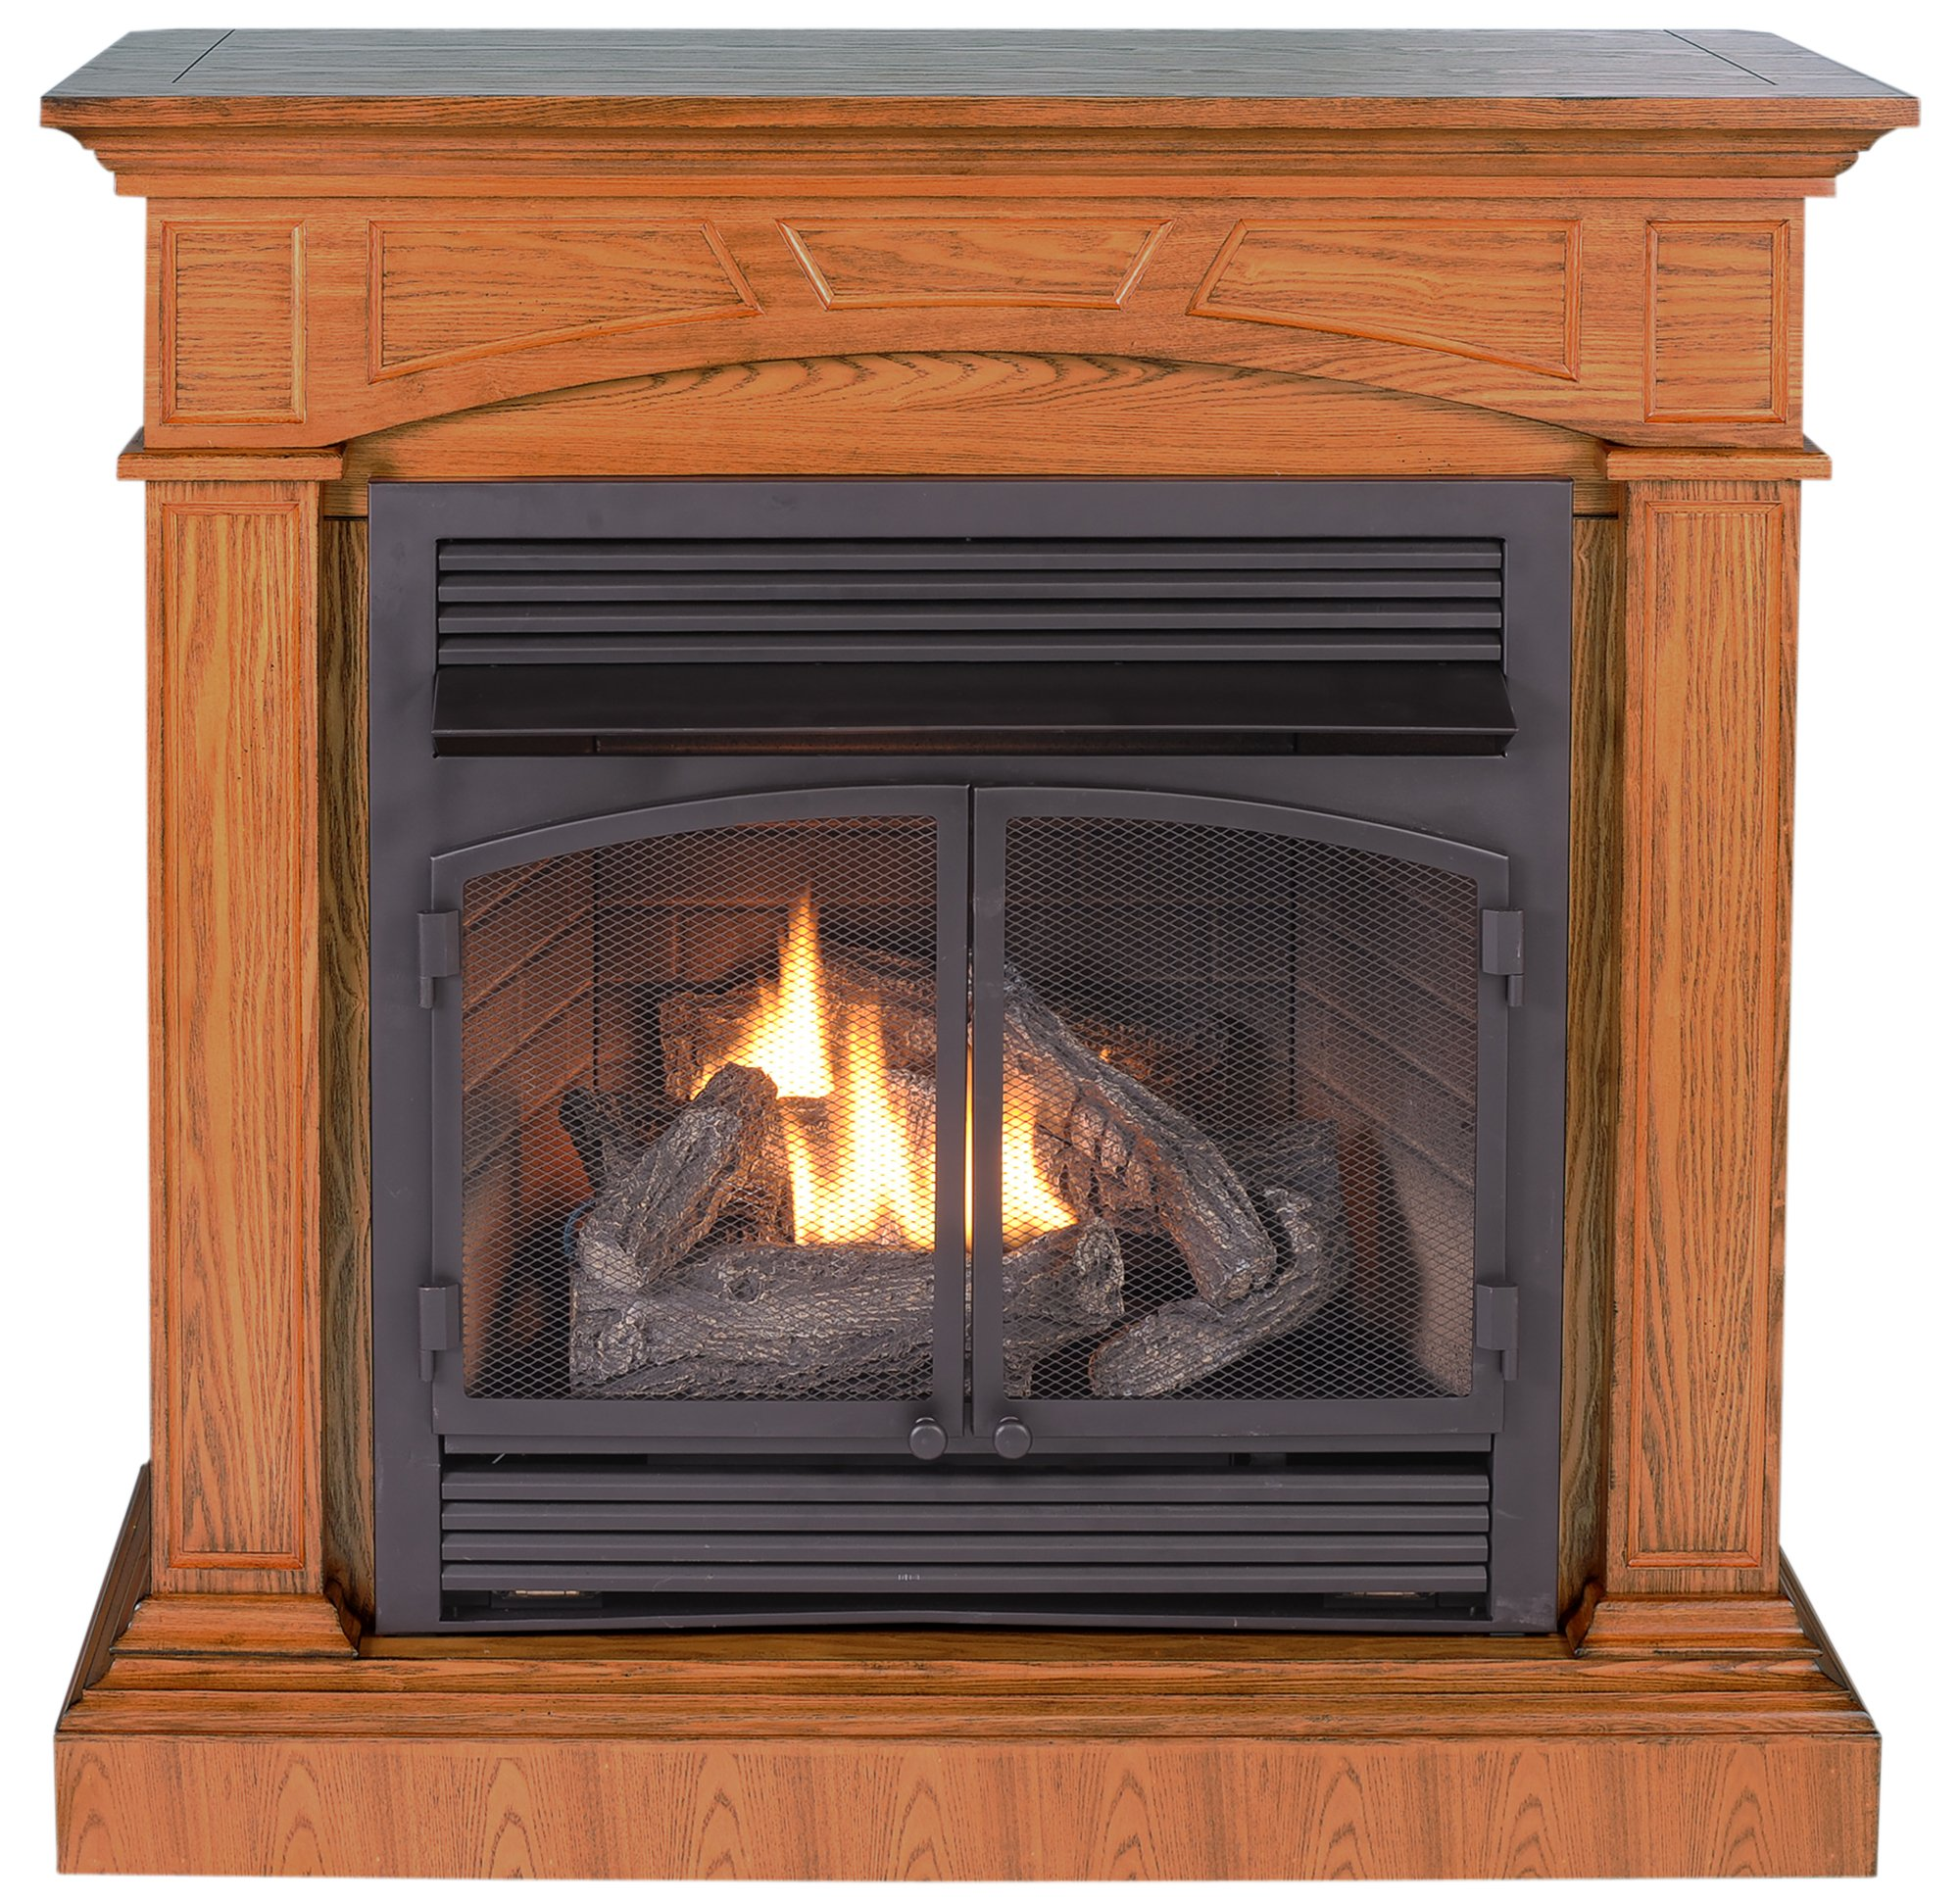 gel today real overstock product garden flame white shipping insert dry fireplace brush home free fuel adelaide